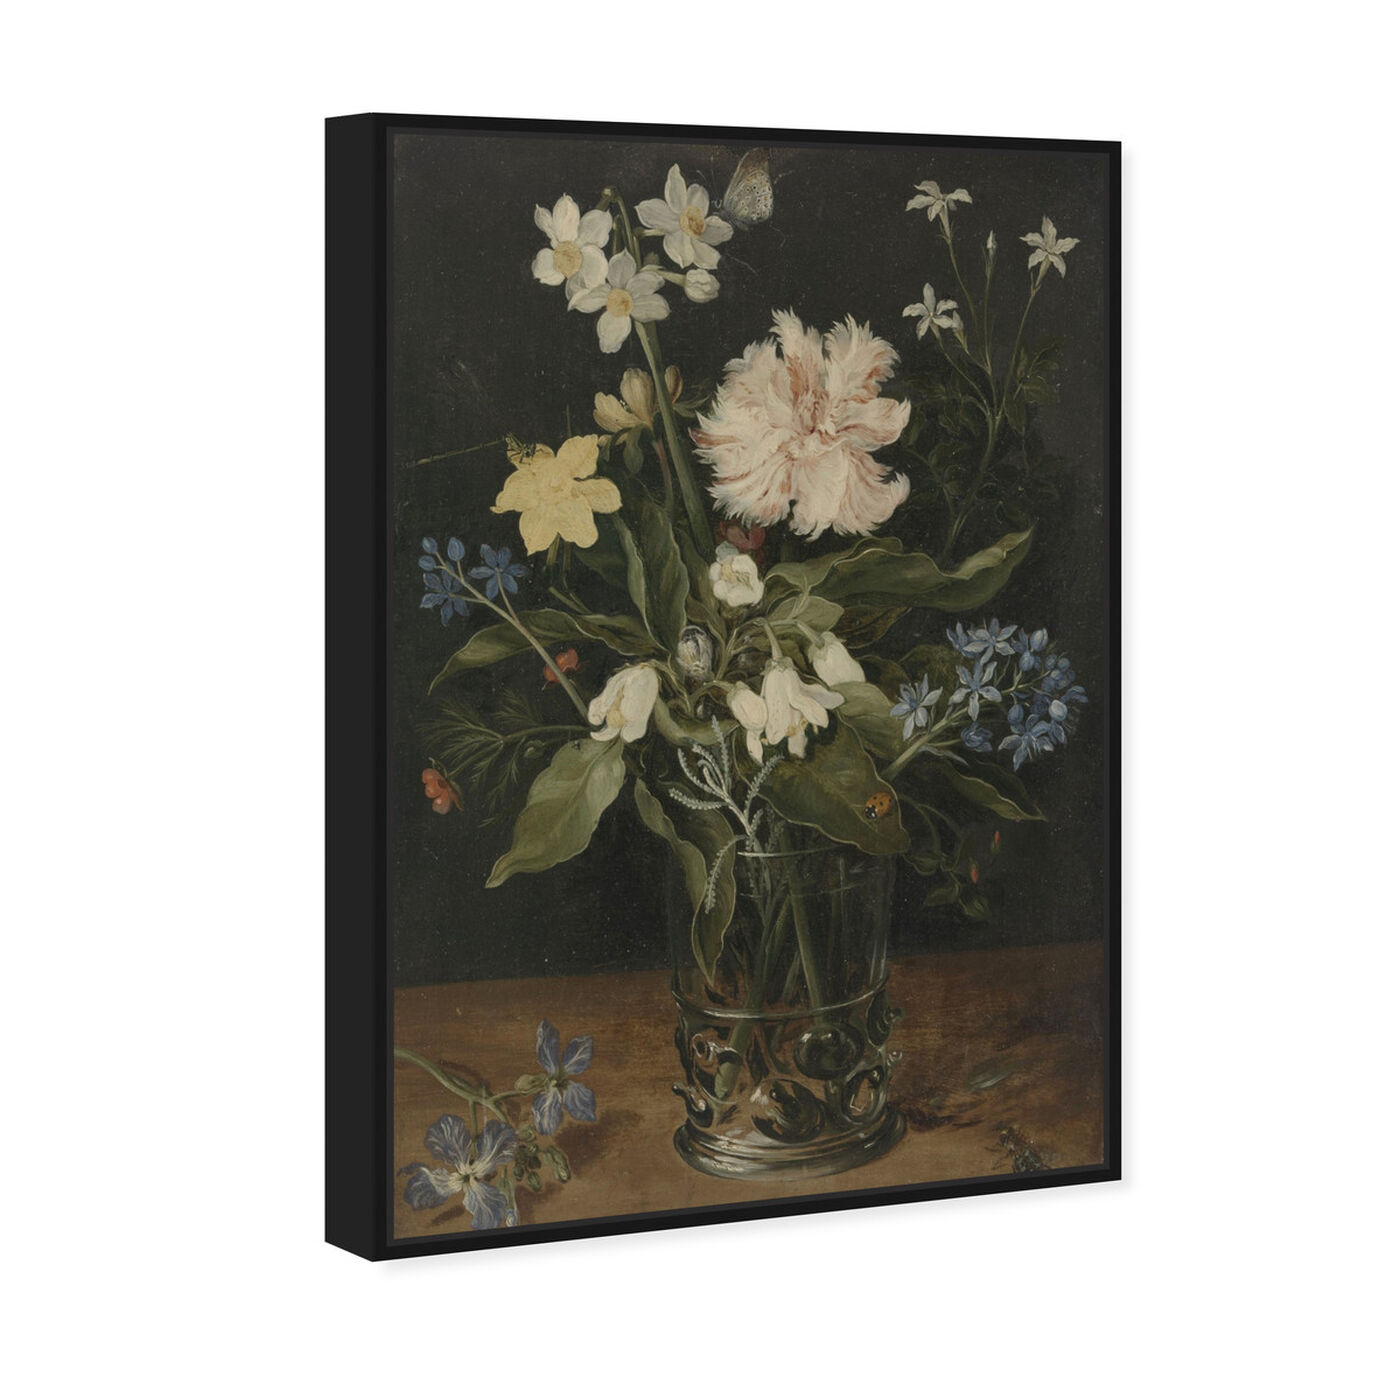 Angled view of Flower Arrangement VI - The Art Cabinet featuring floral and botanical and florals art.